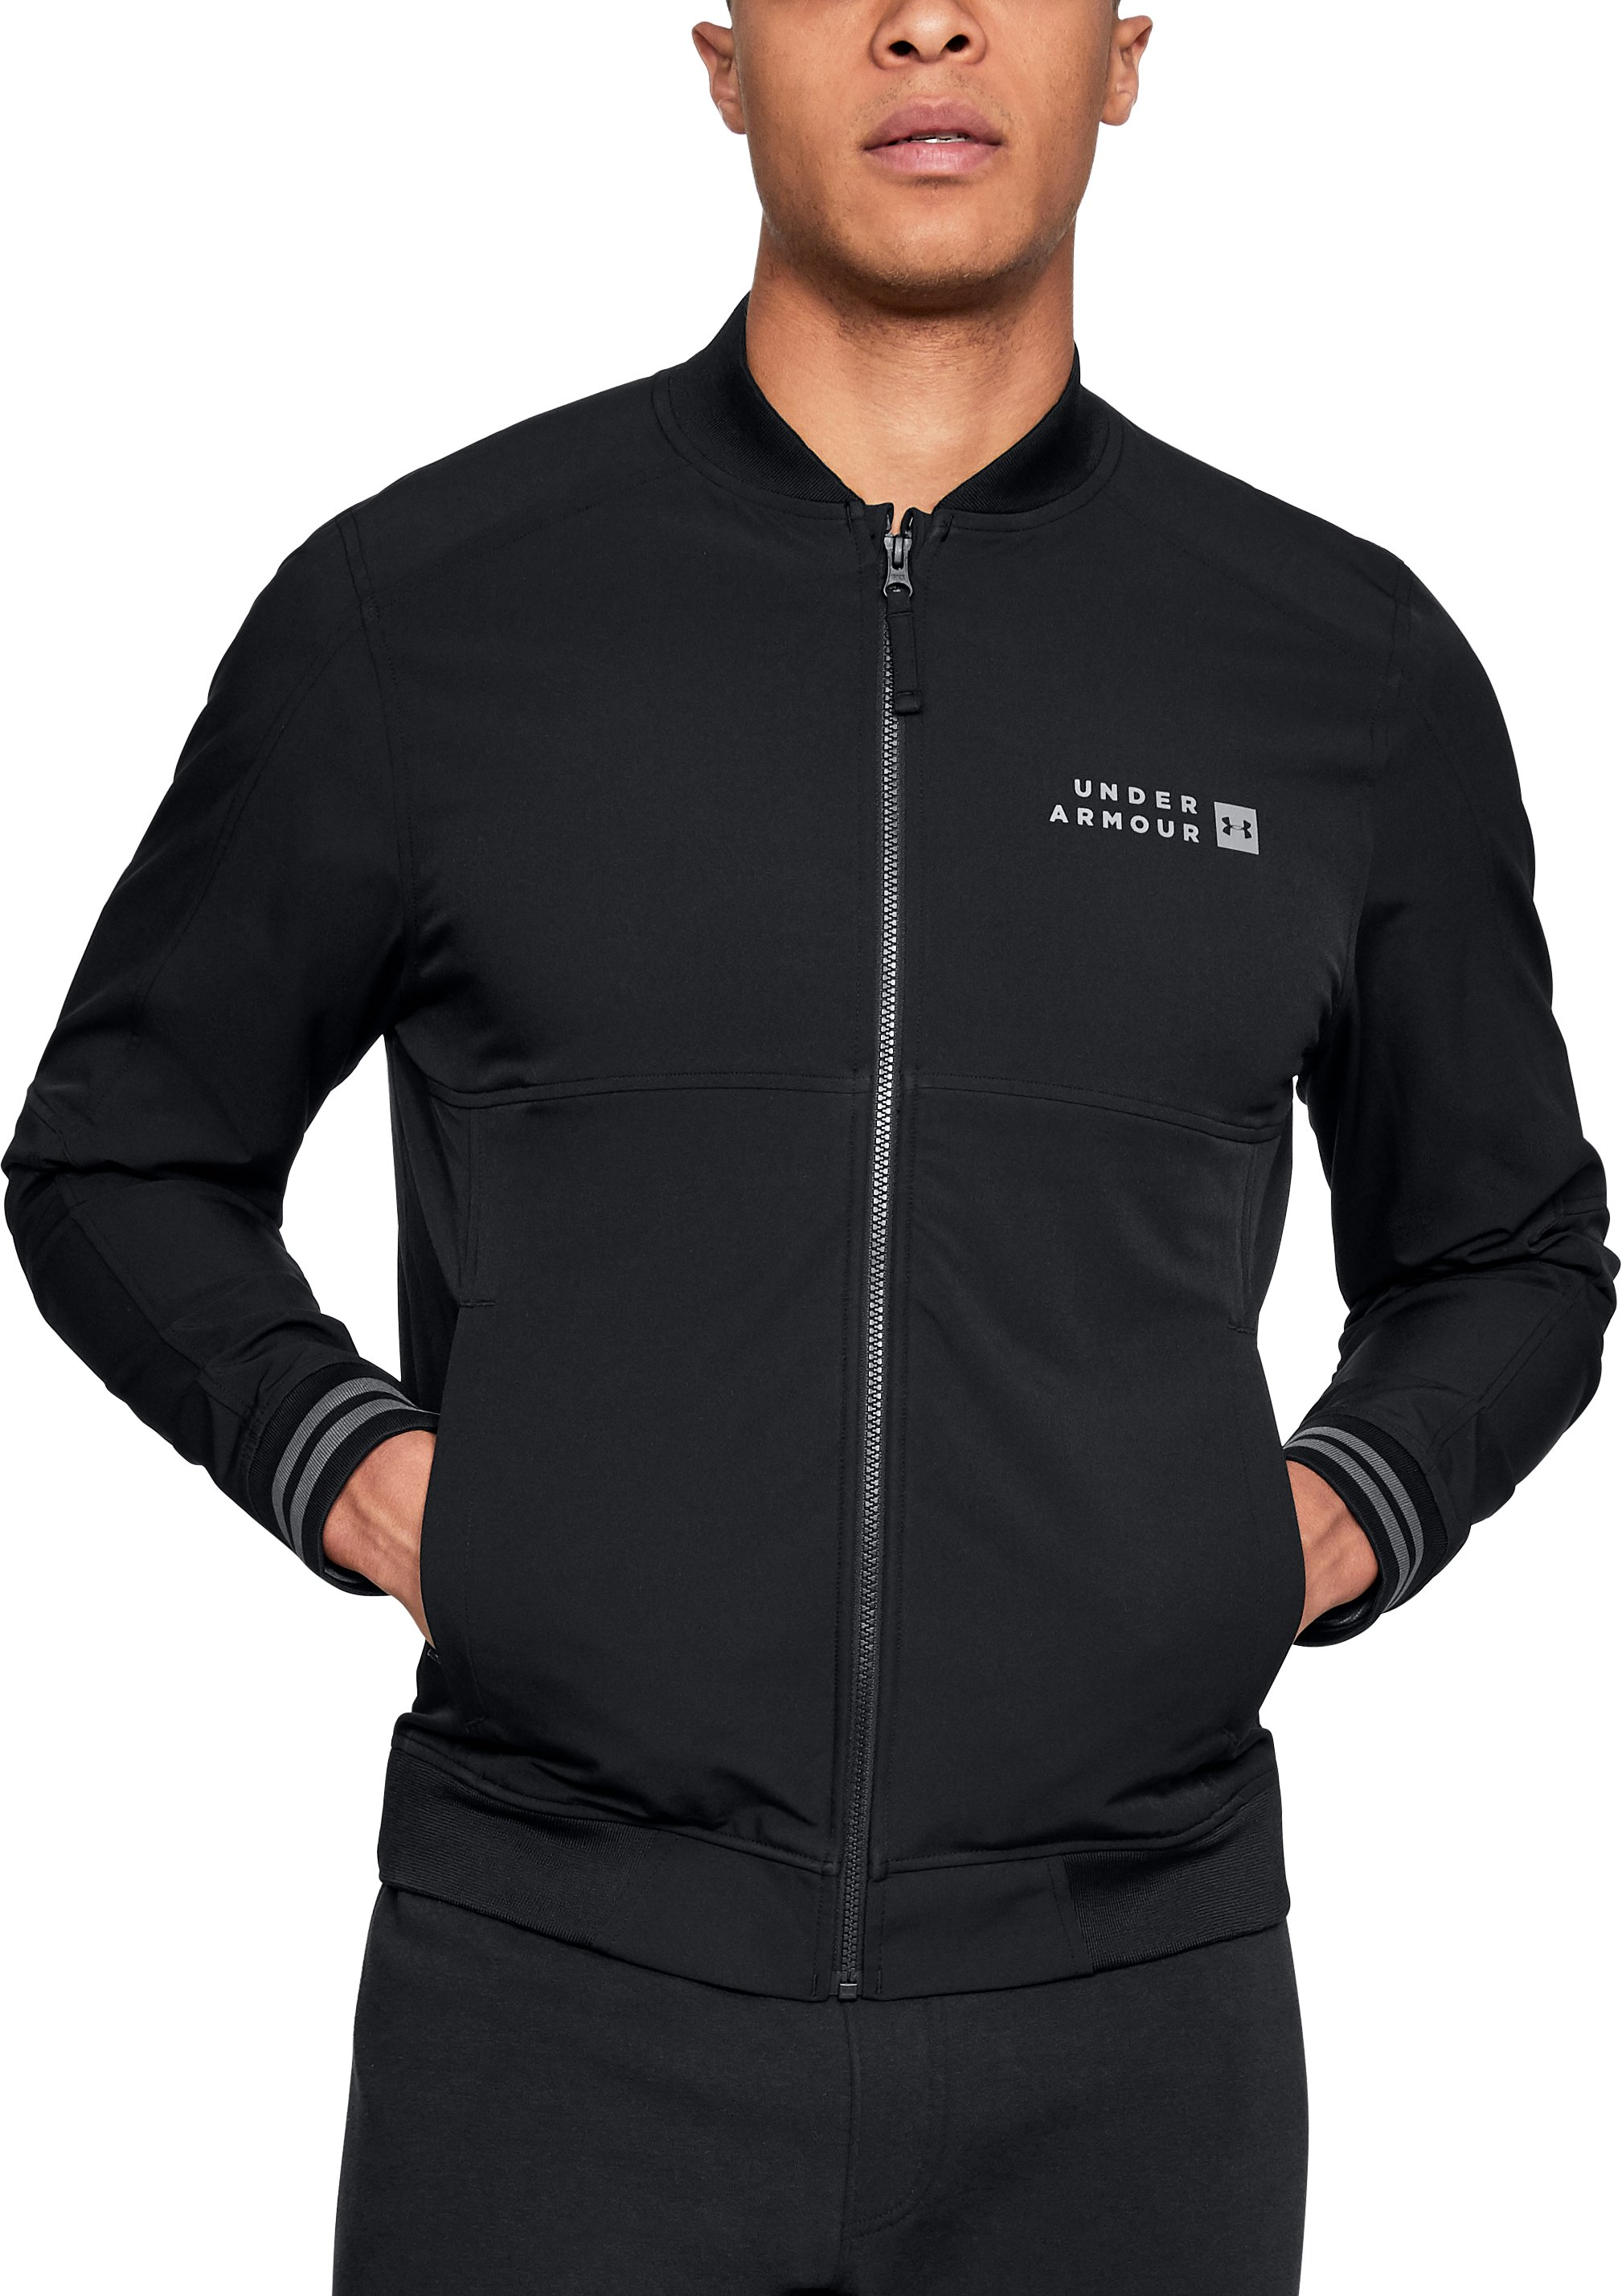 black bombers Men's UA Sportstyle Woven Bomber It is very comfortable and enough for those days that are a little cool but wearable anytime....I absolutely love this jacket....It's perfect for summer nights when it's not actually cold but you want to be more dressed up than just a v-neck and jeans.